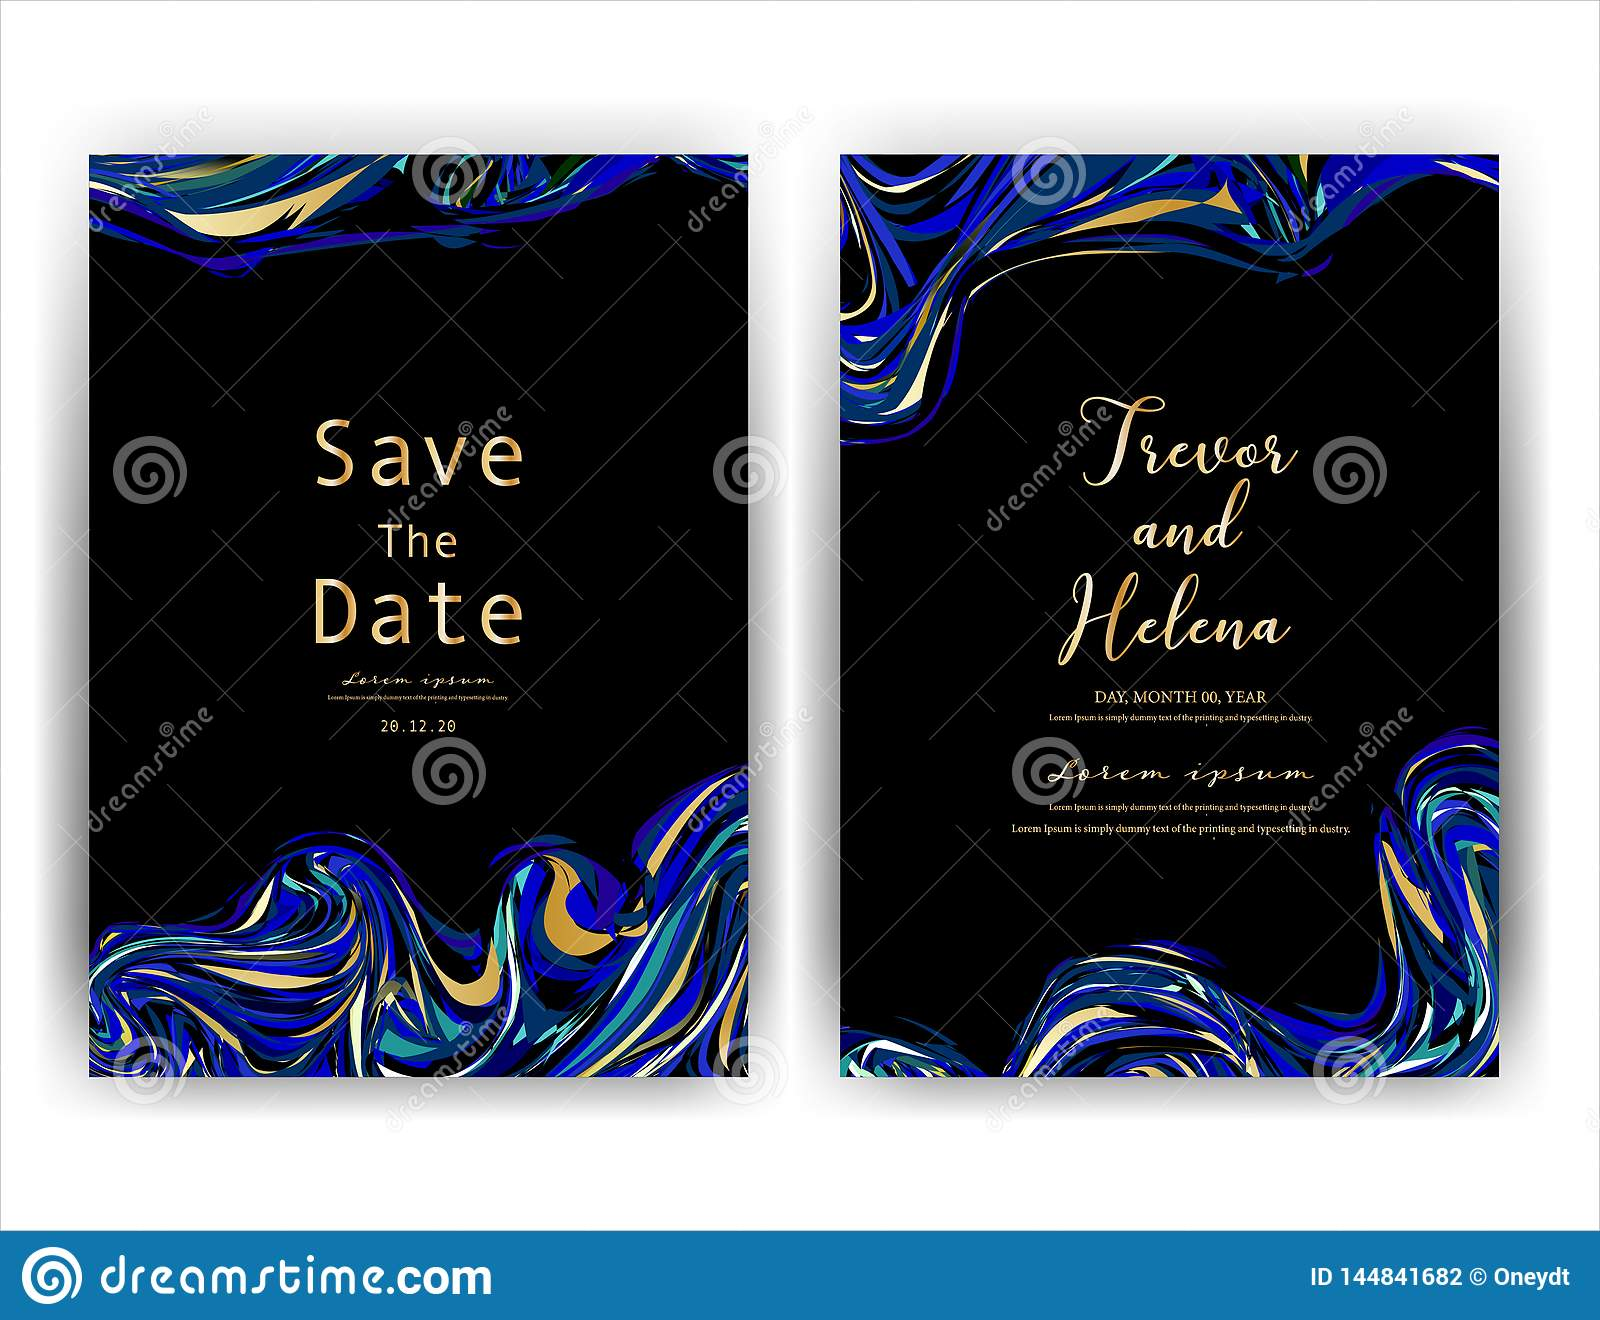 80003edd3fedf Wedding Invitation Card, Save The Date Wedding Card, Modern Card ...